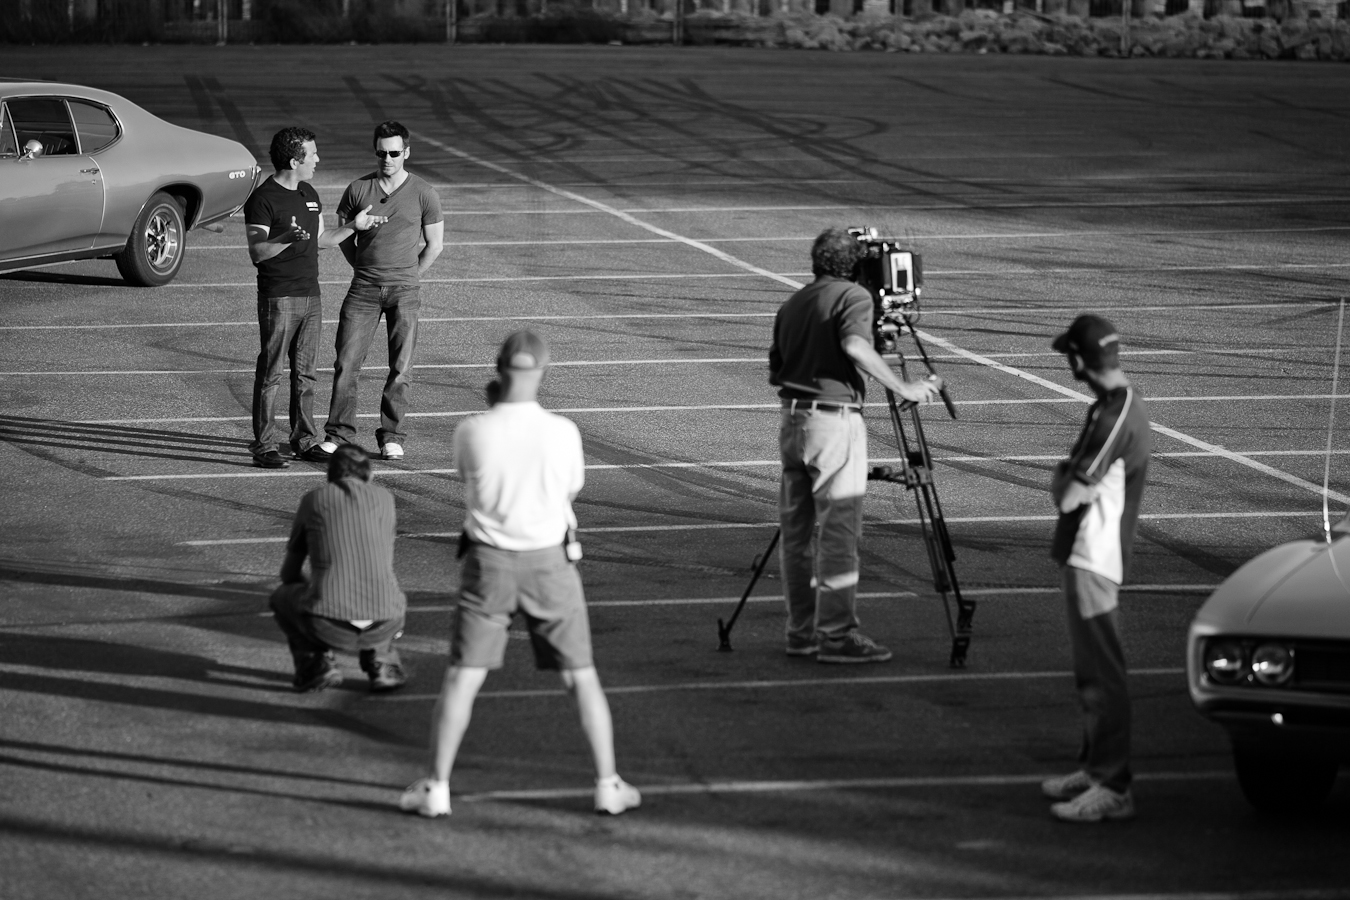 Rick Mercer, Allan Hawco & Crew filming a Segment for the RMR shot by //d. For A City Like Ours